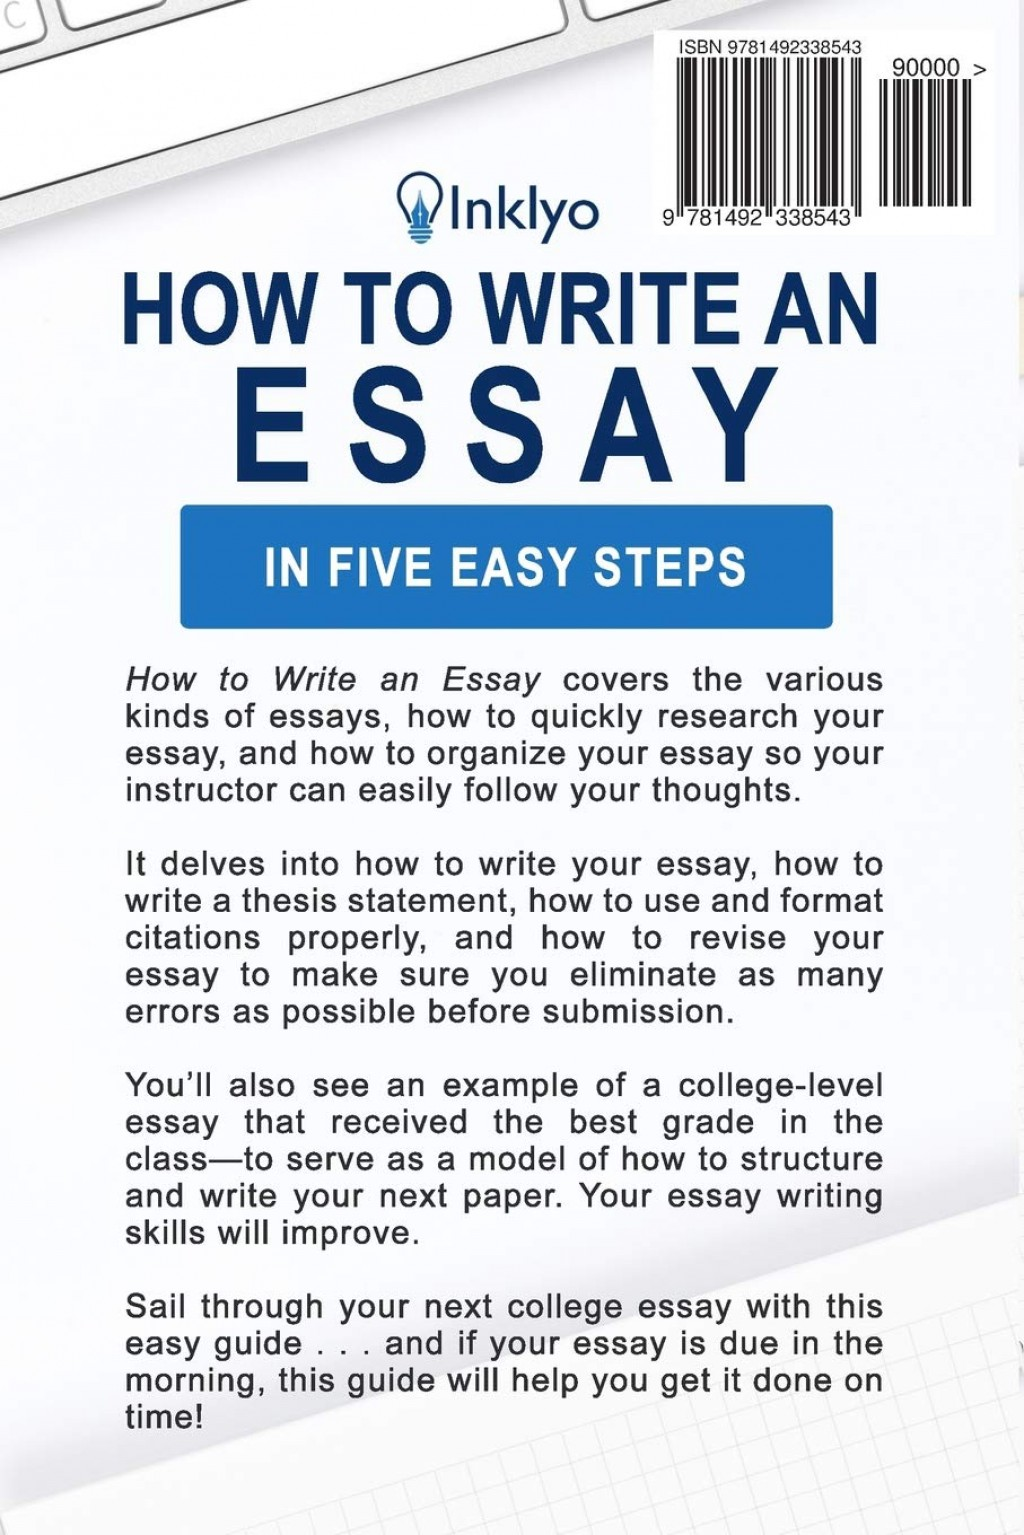 004 71v7ckw5pll Essay Example Steps To Writing Stunning An 4th Grade Middle School Conclusion Large